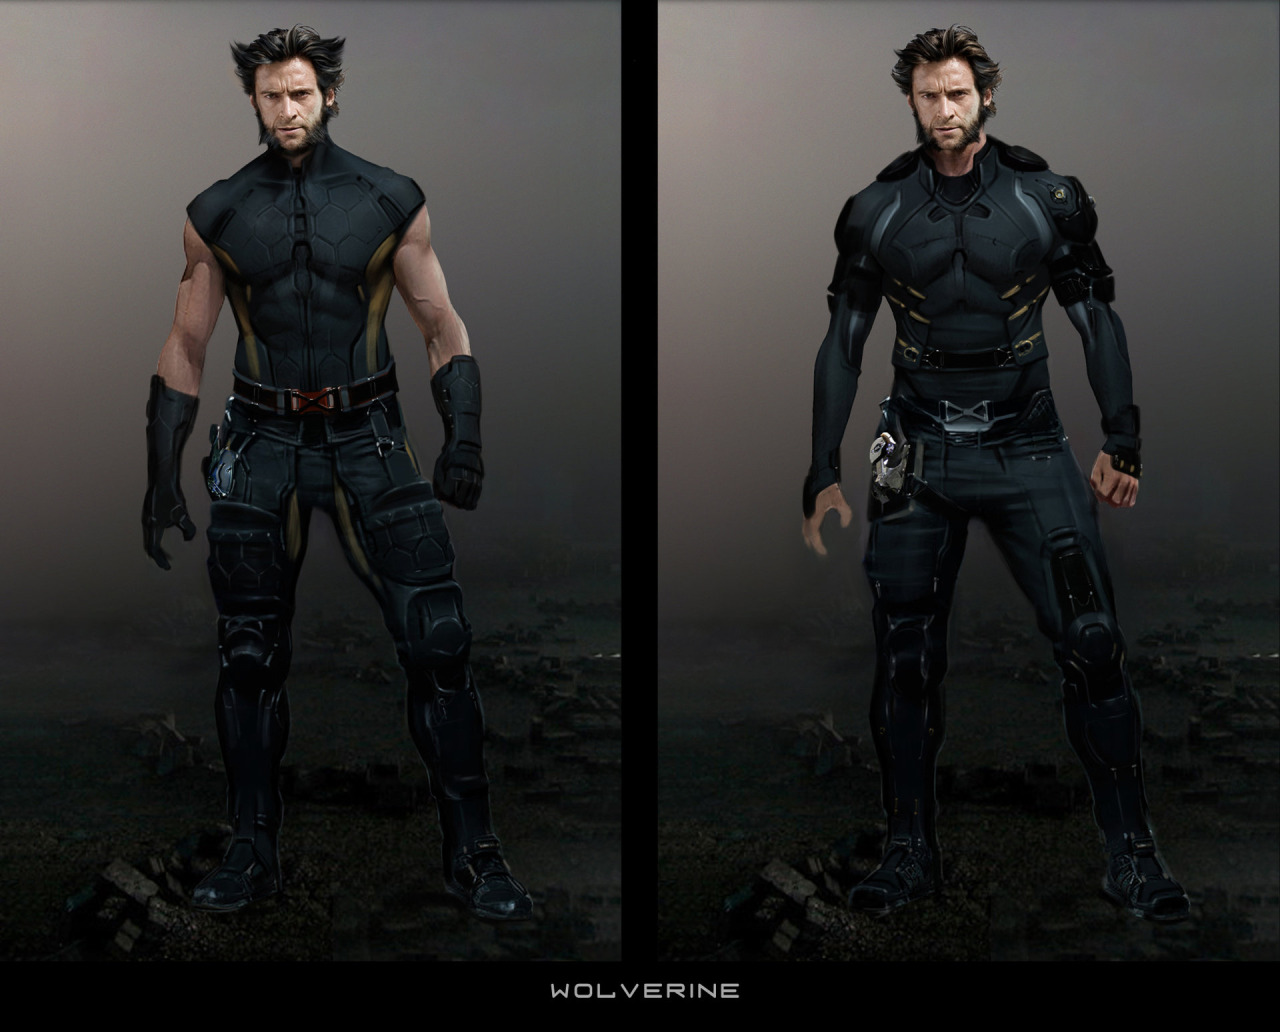 x-men days of future past wolverine concept art joshua james (4)